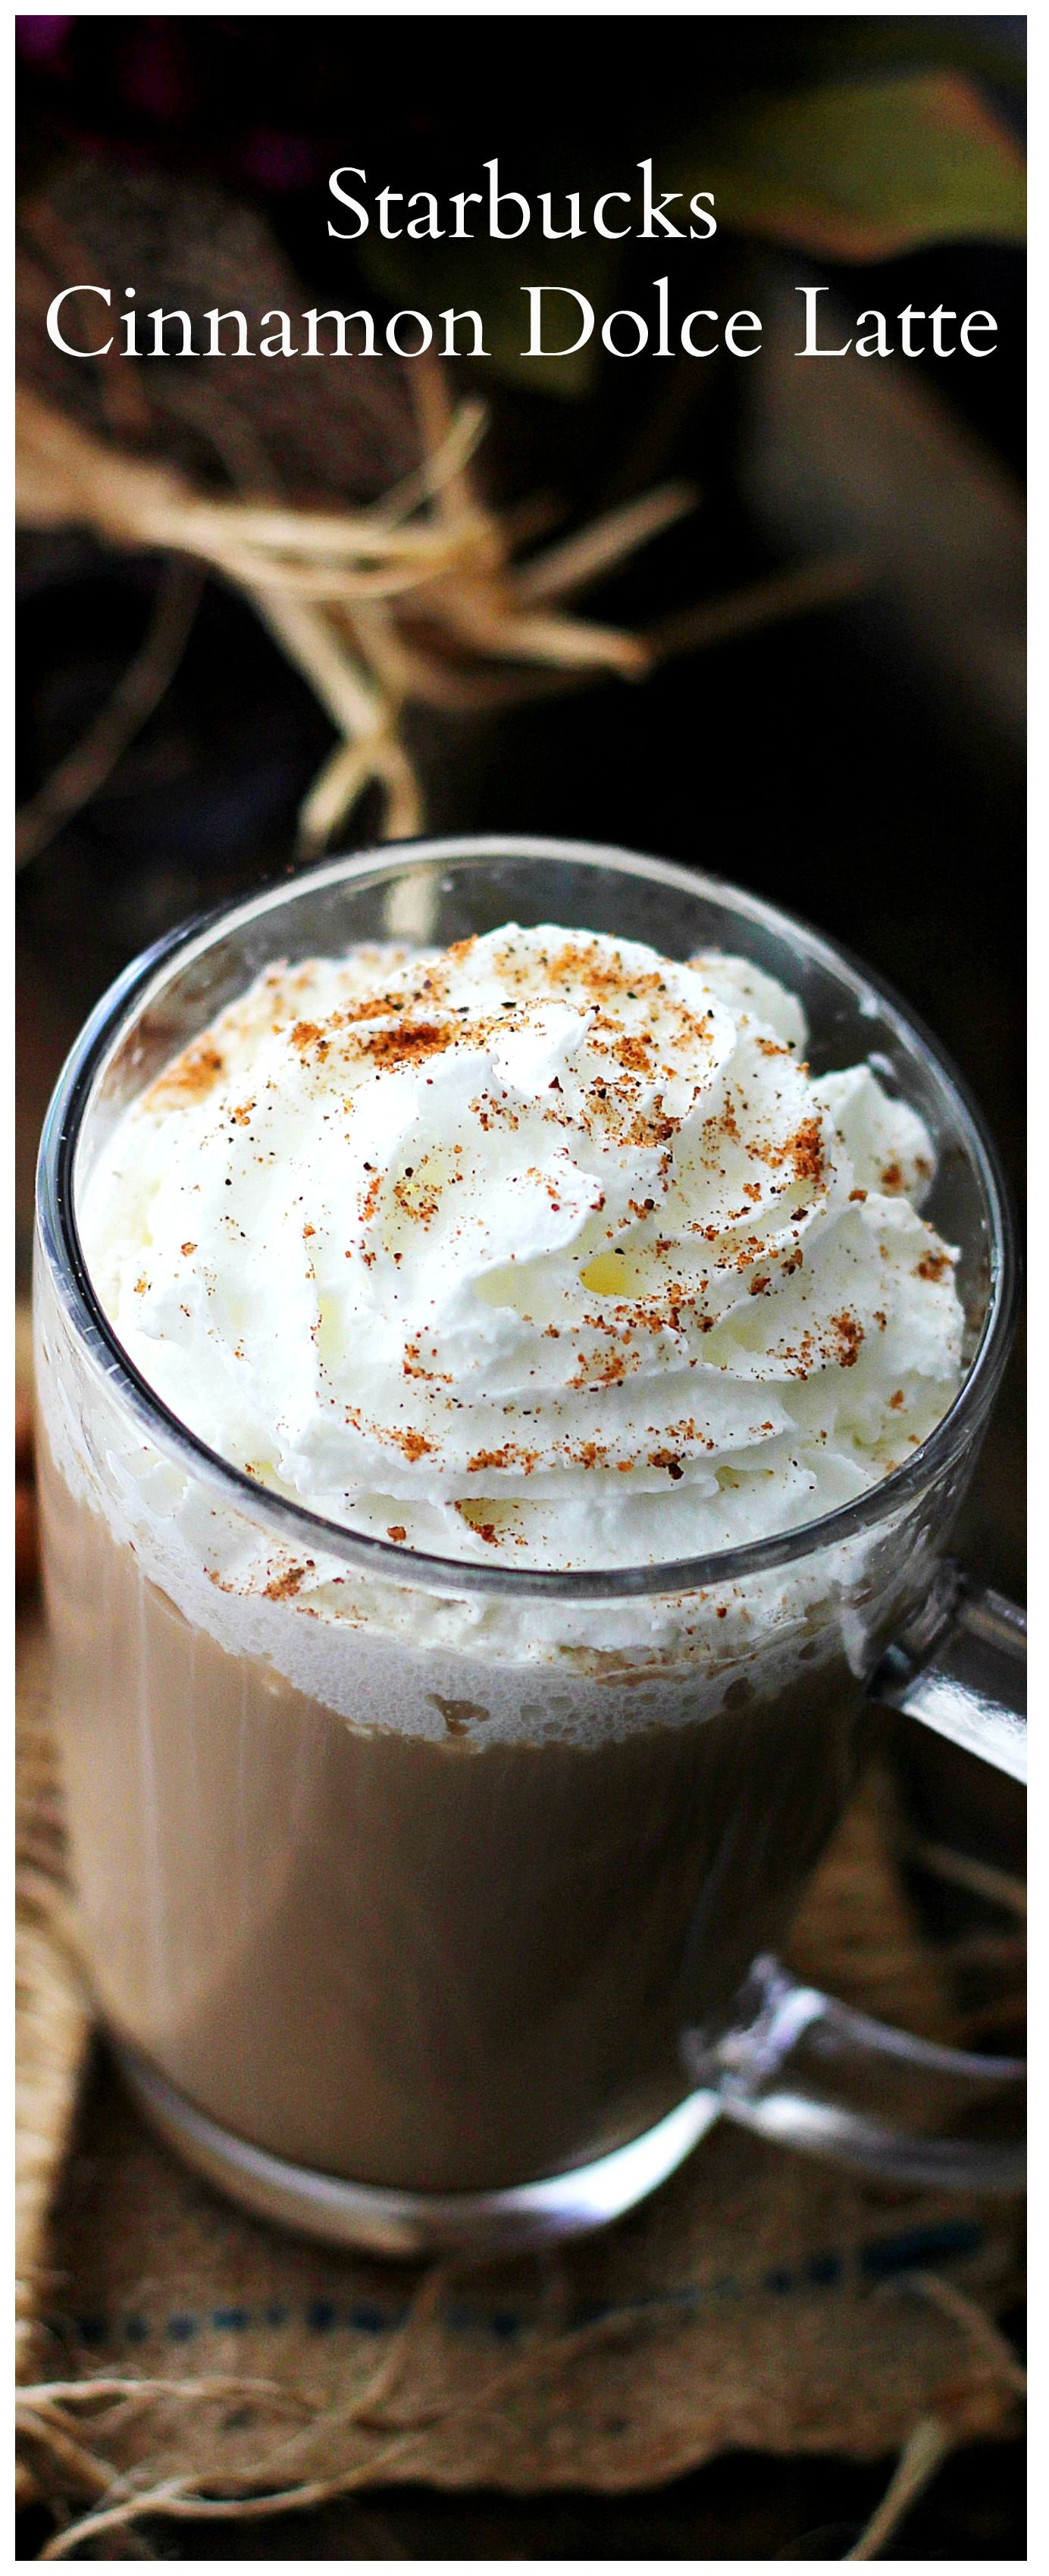 An exact replica of Starbucks deliciously sweet warm and forting Cinnamon Dolce Latte